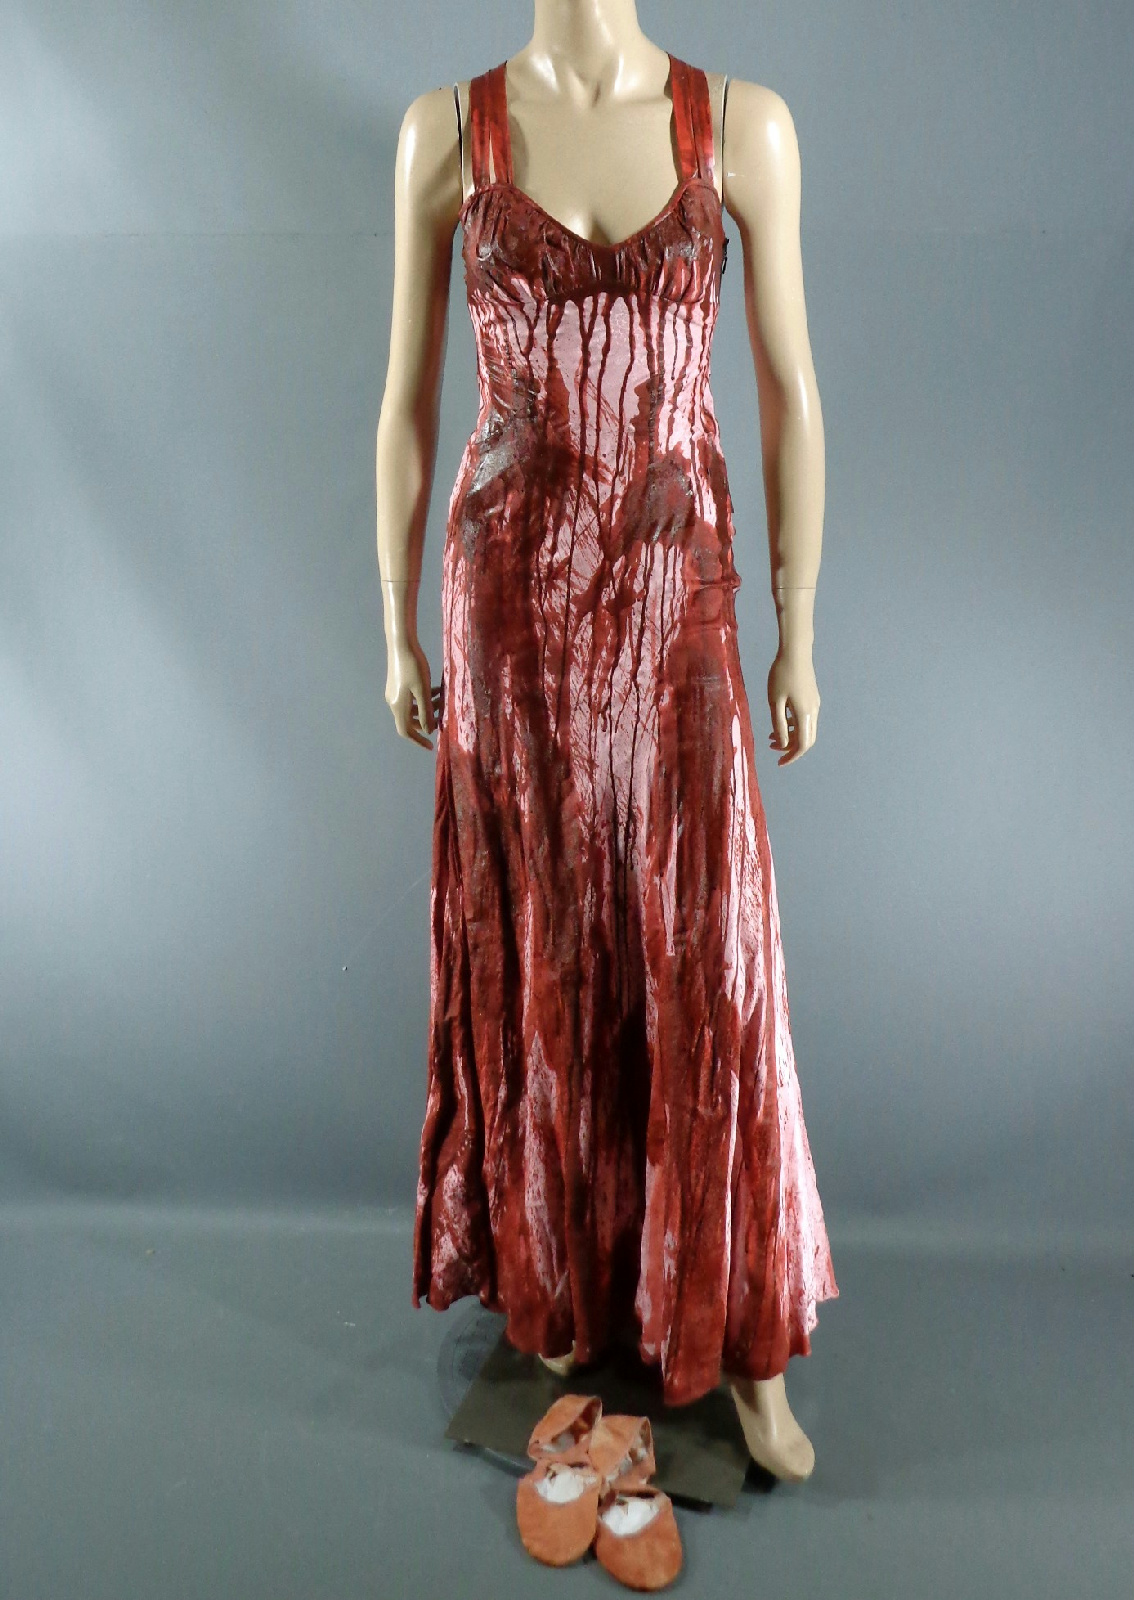 Carrie White\'s Prom Dress | Warehouse 13 Artifact Database Wiki ...